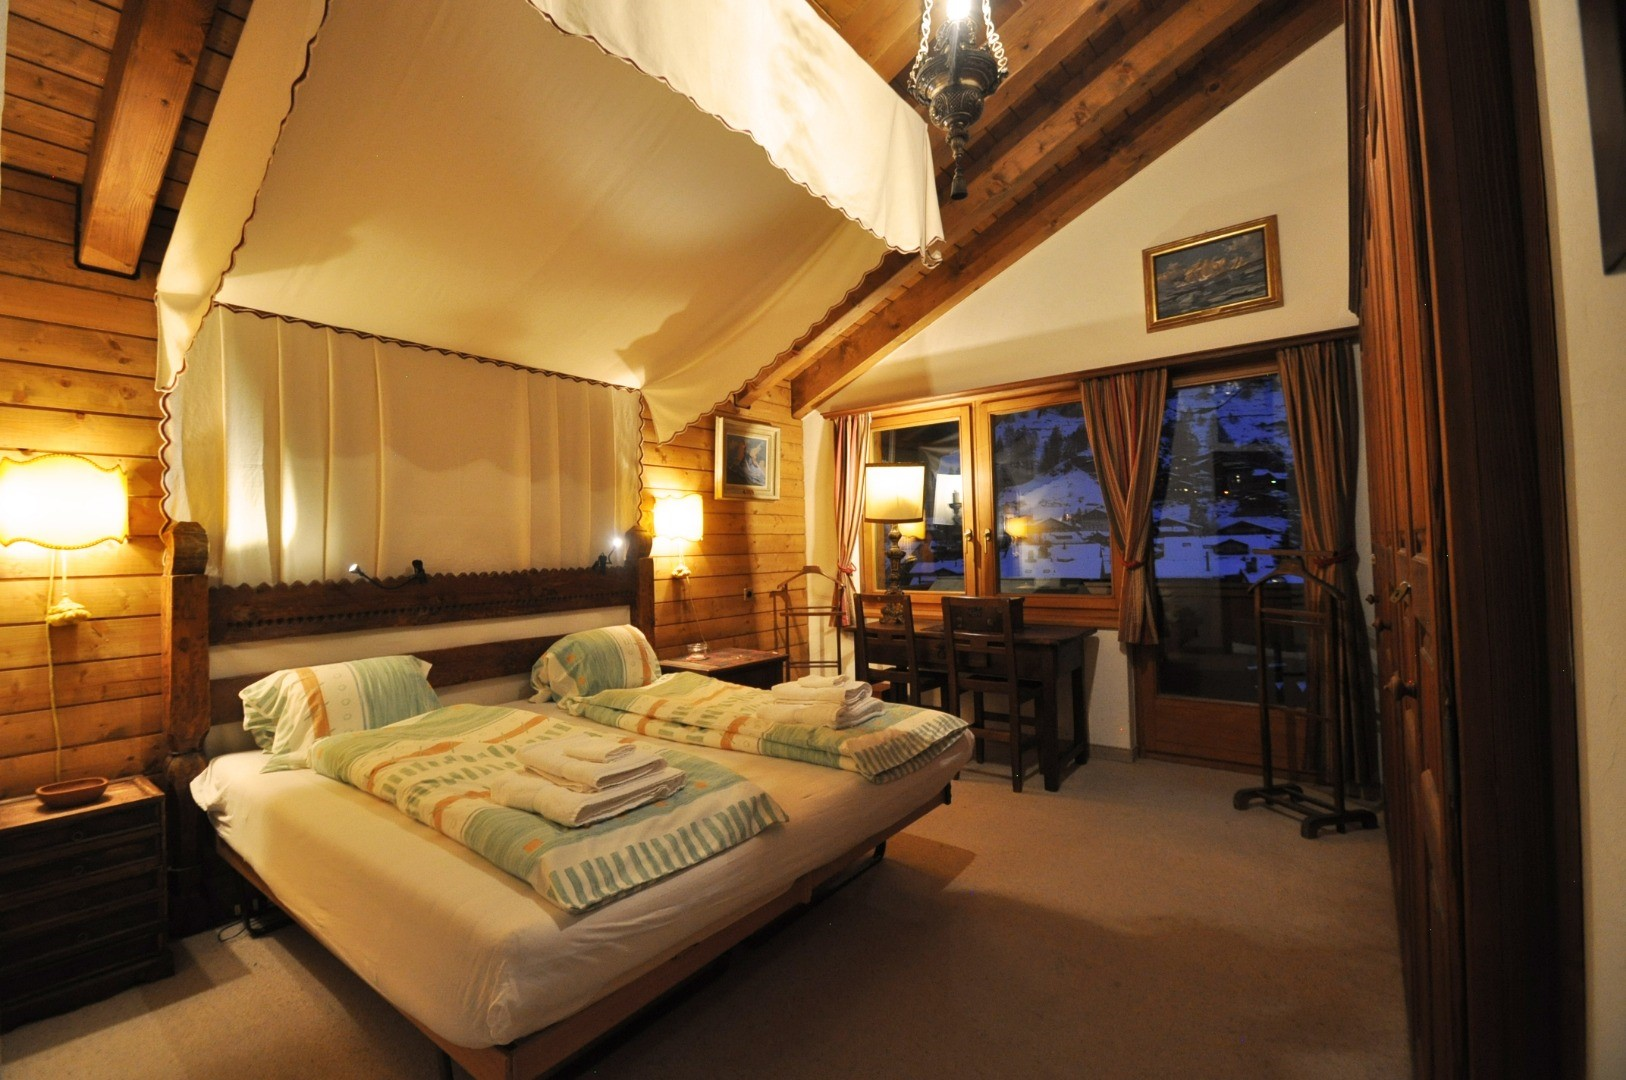 ZermattCervinoMasterBedroom1.jpg